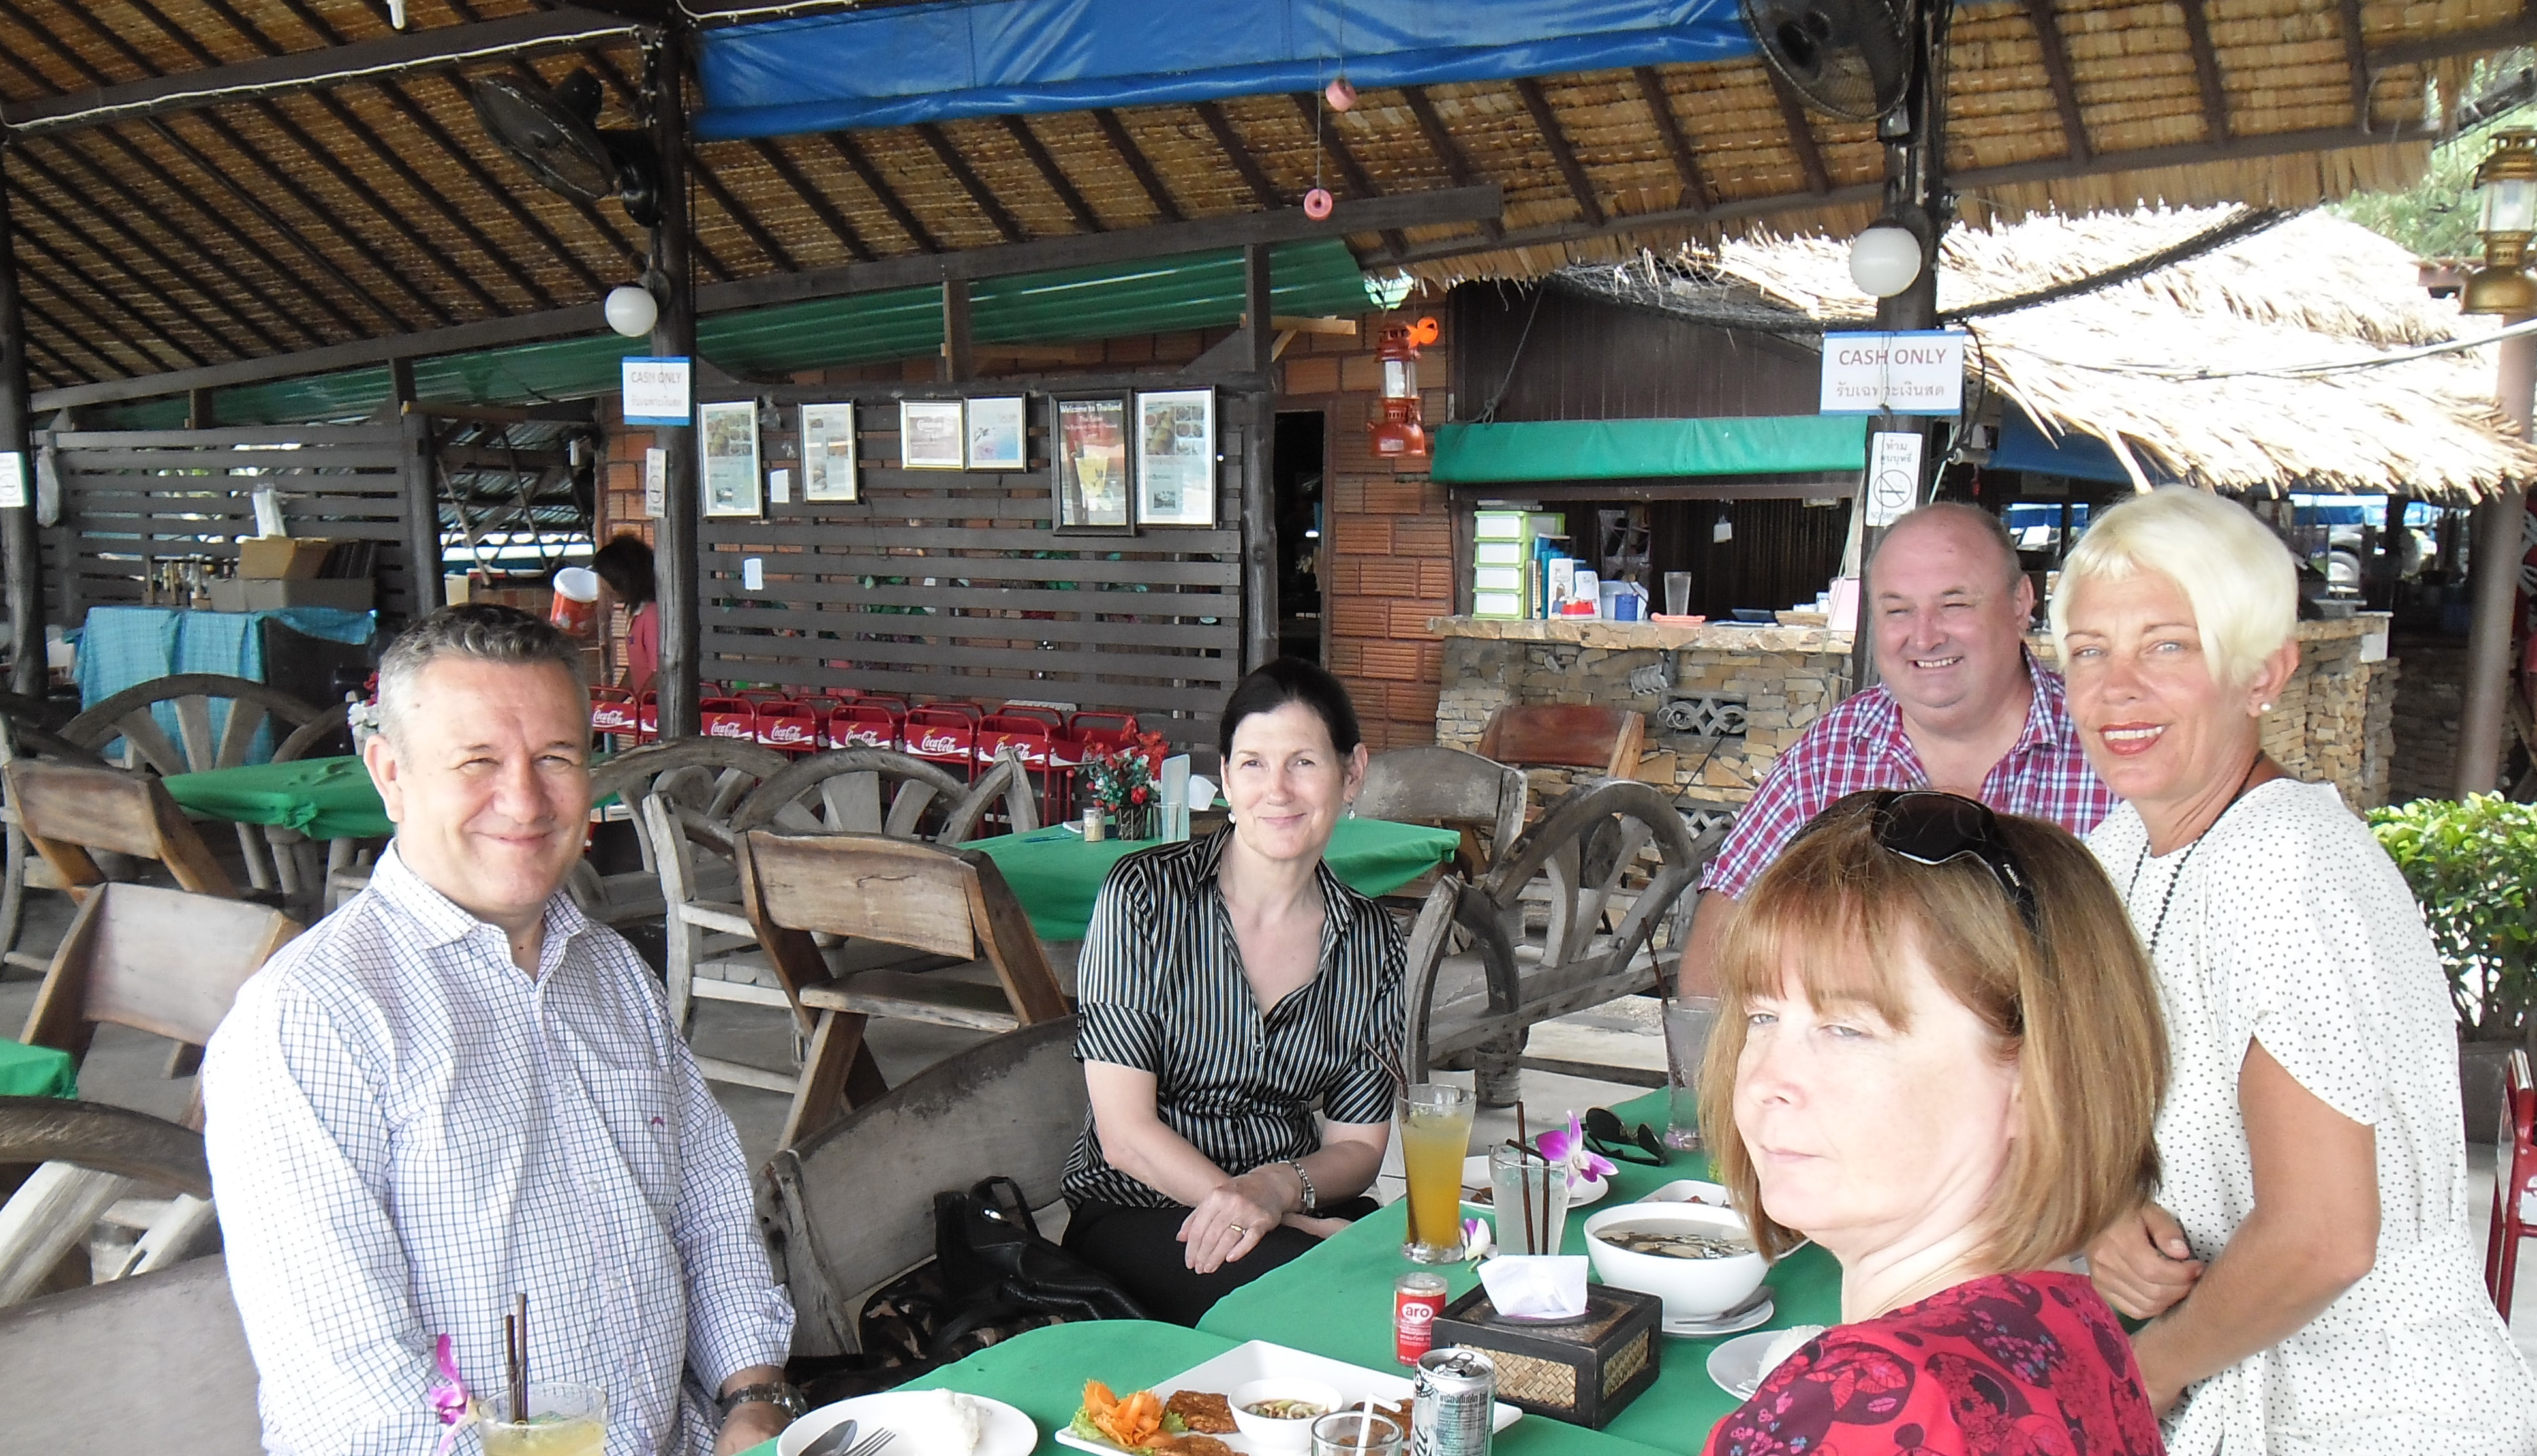 Vice consuls of the British Embassy in Bangkok visit Koh Samui | Samui Times